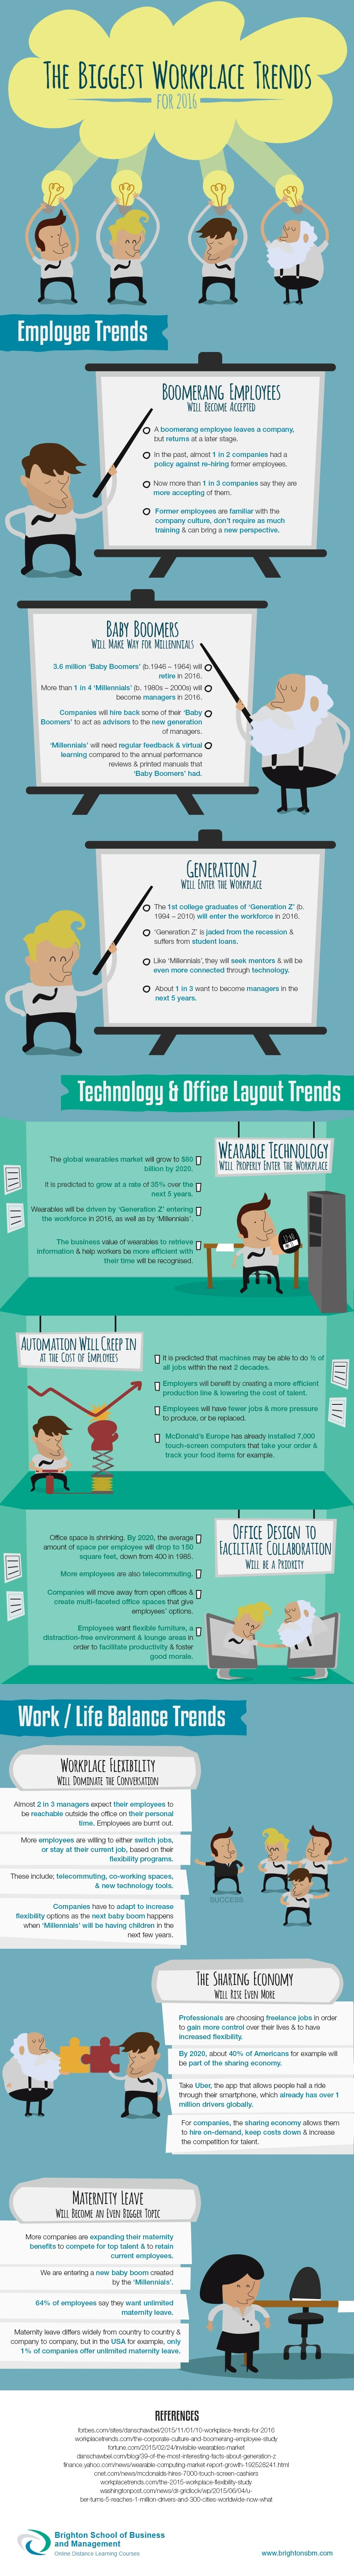 workplace-trends-2016-infographic.jpg